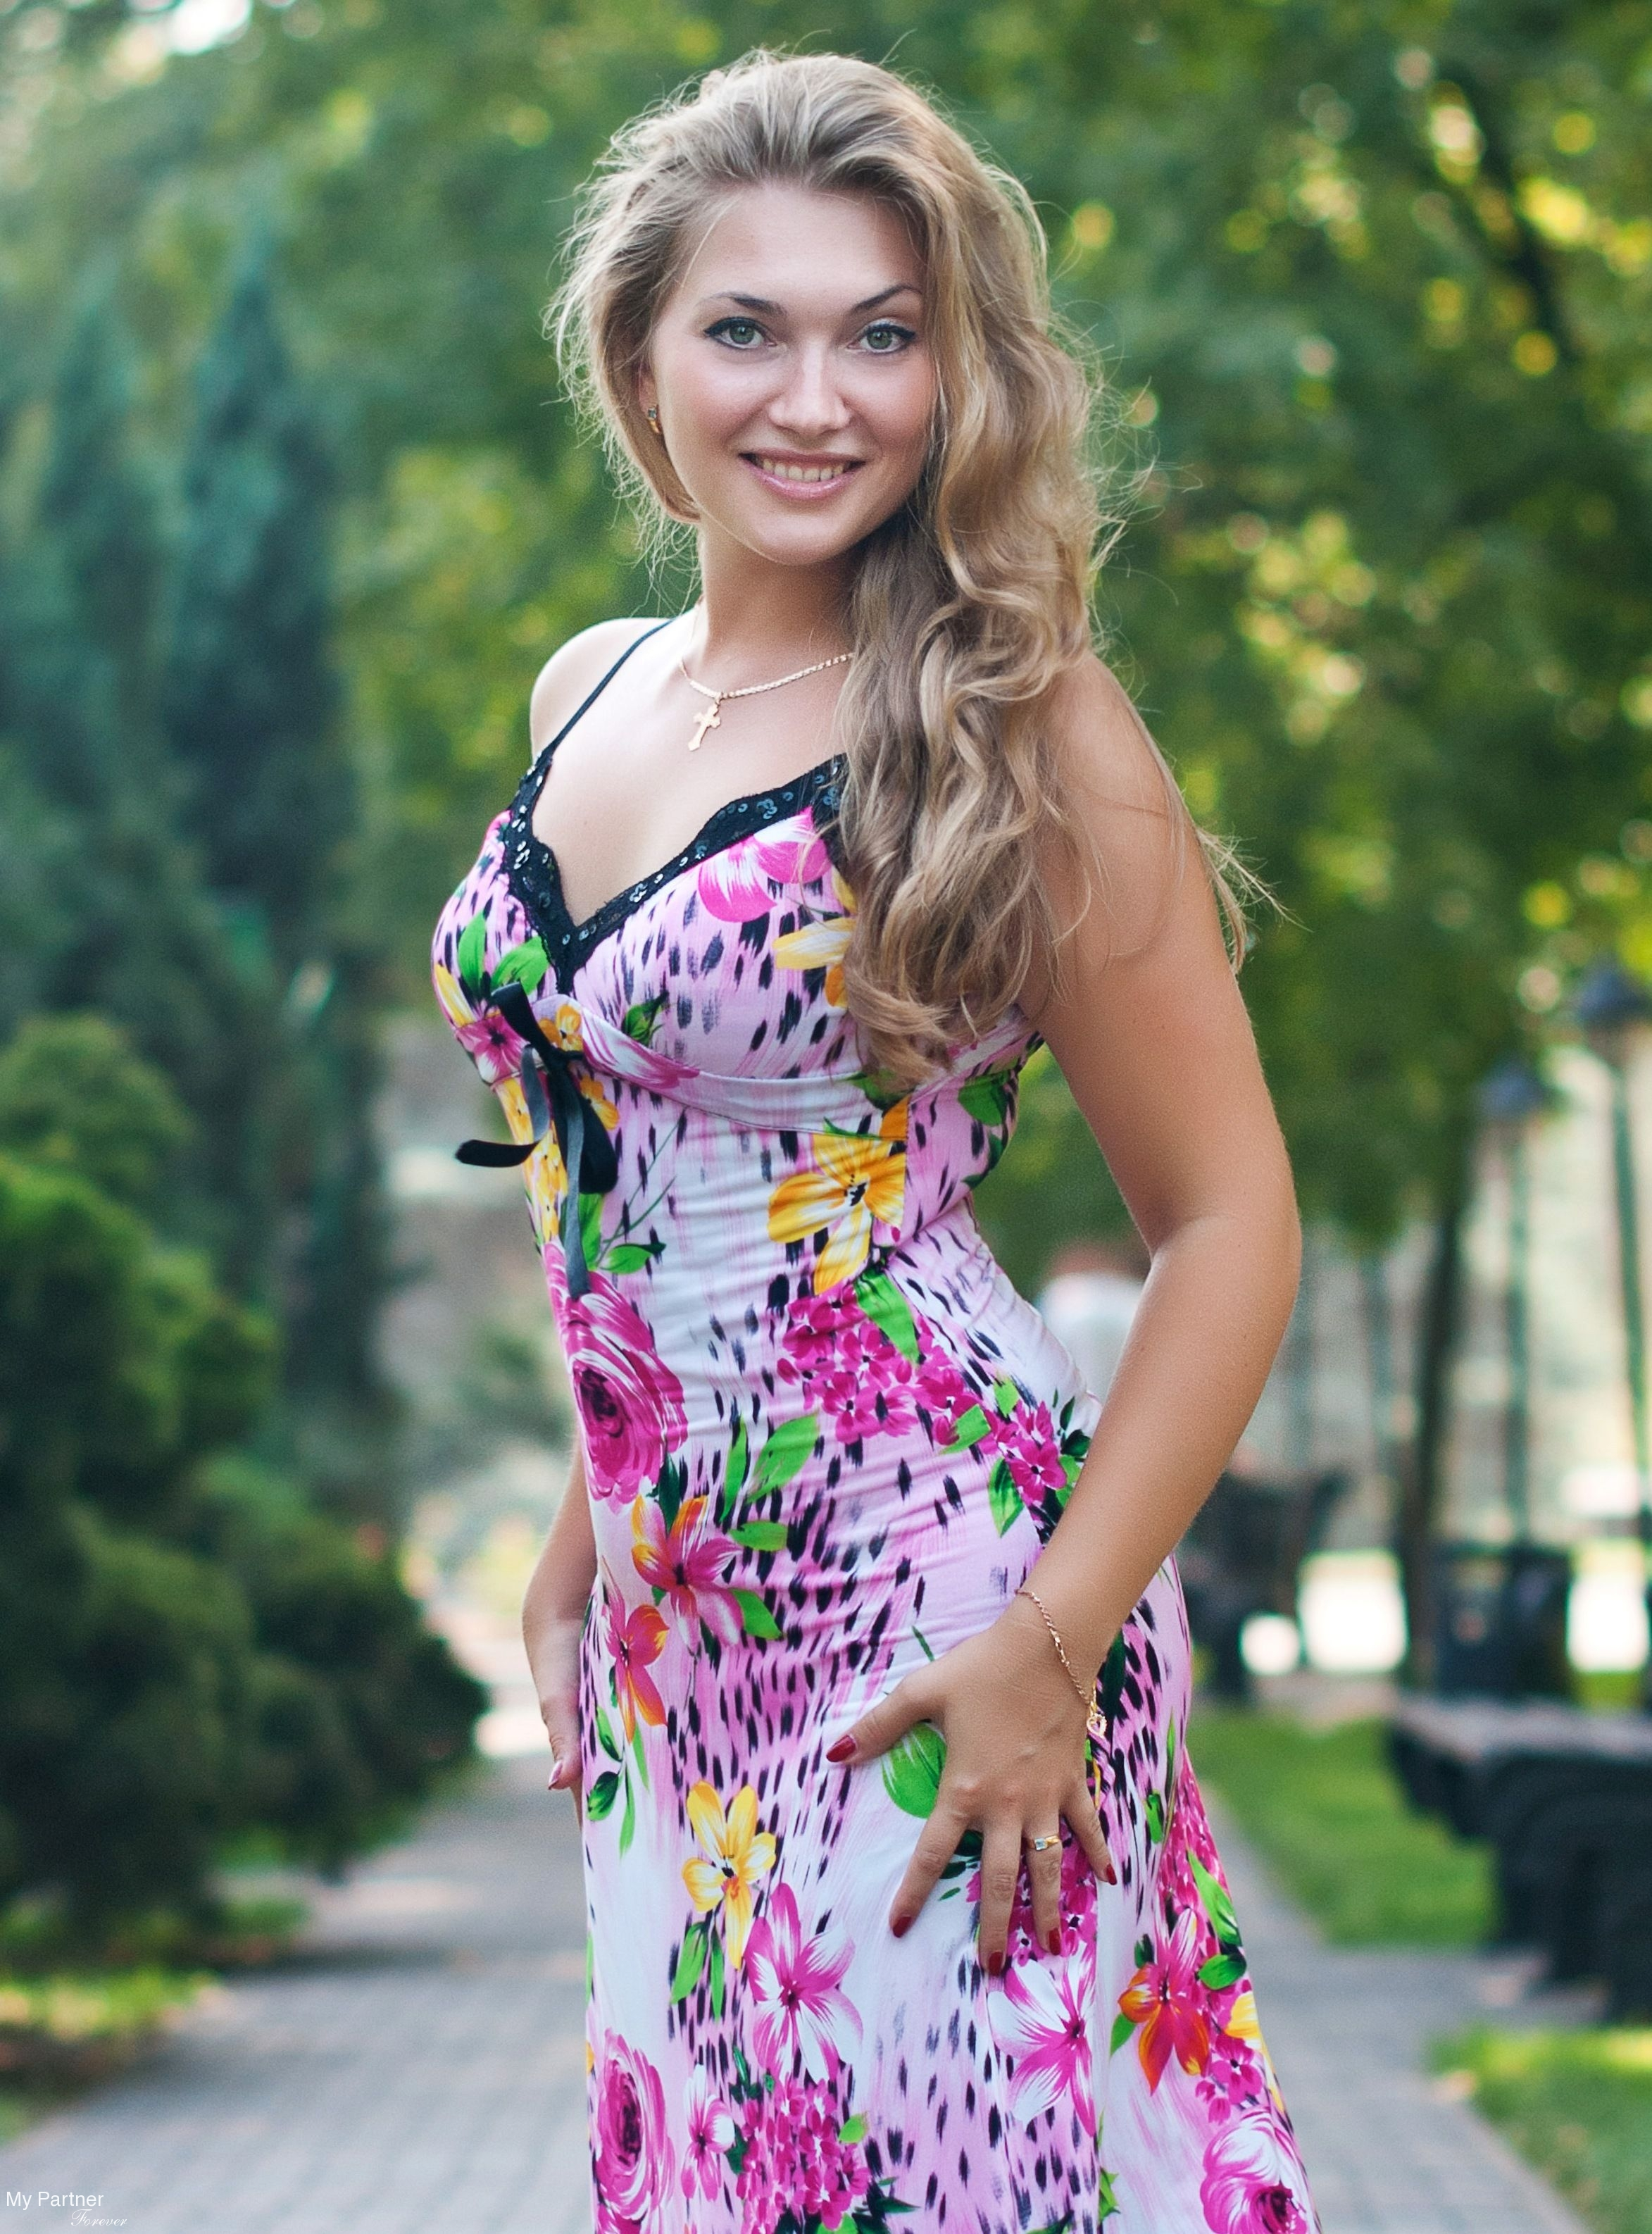 thai dating sites uk lappeenranta